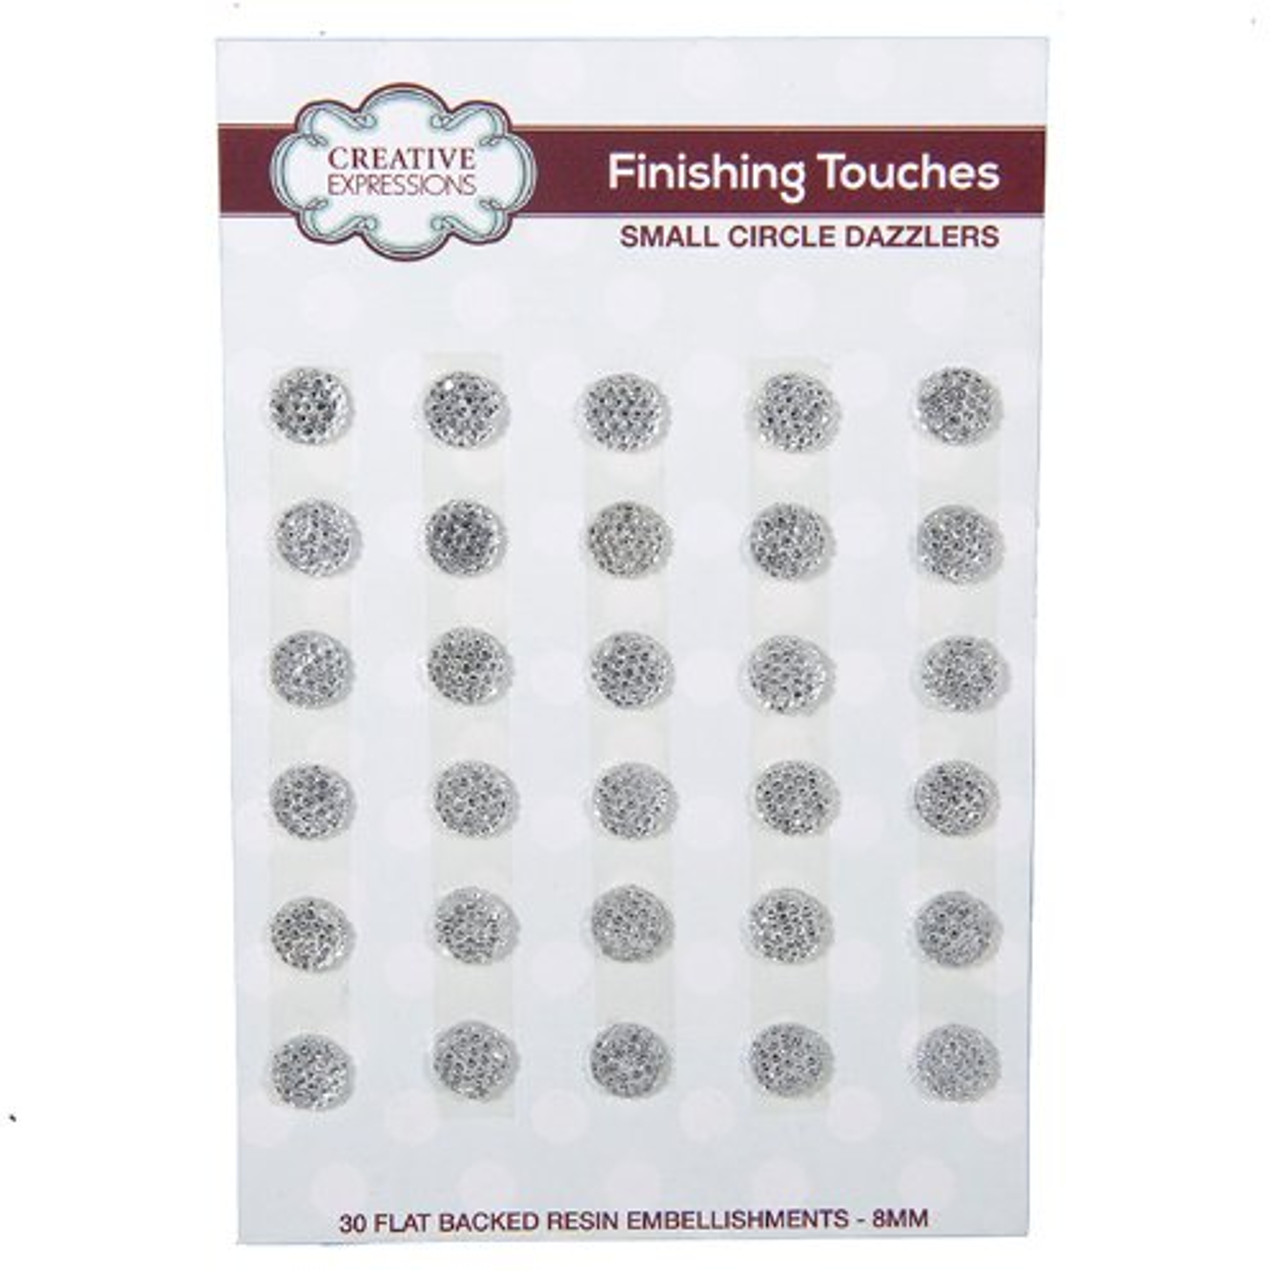 Creative Expressions Small Circle Dazzlers 8mm Pk 30